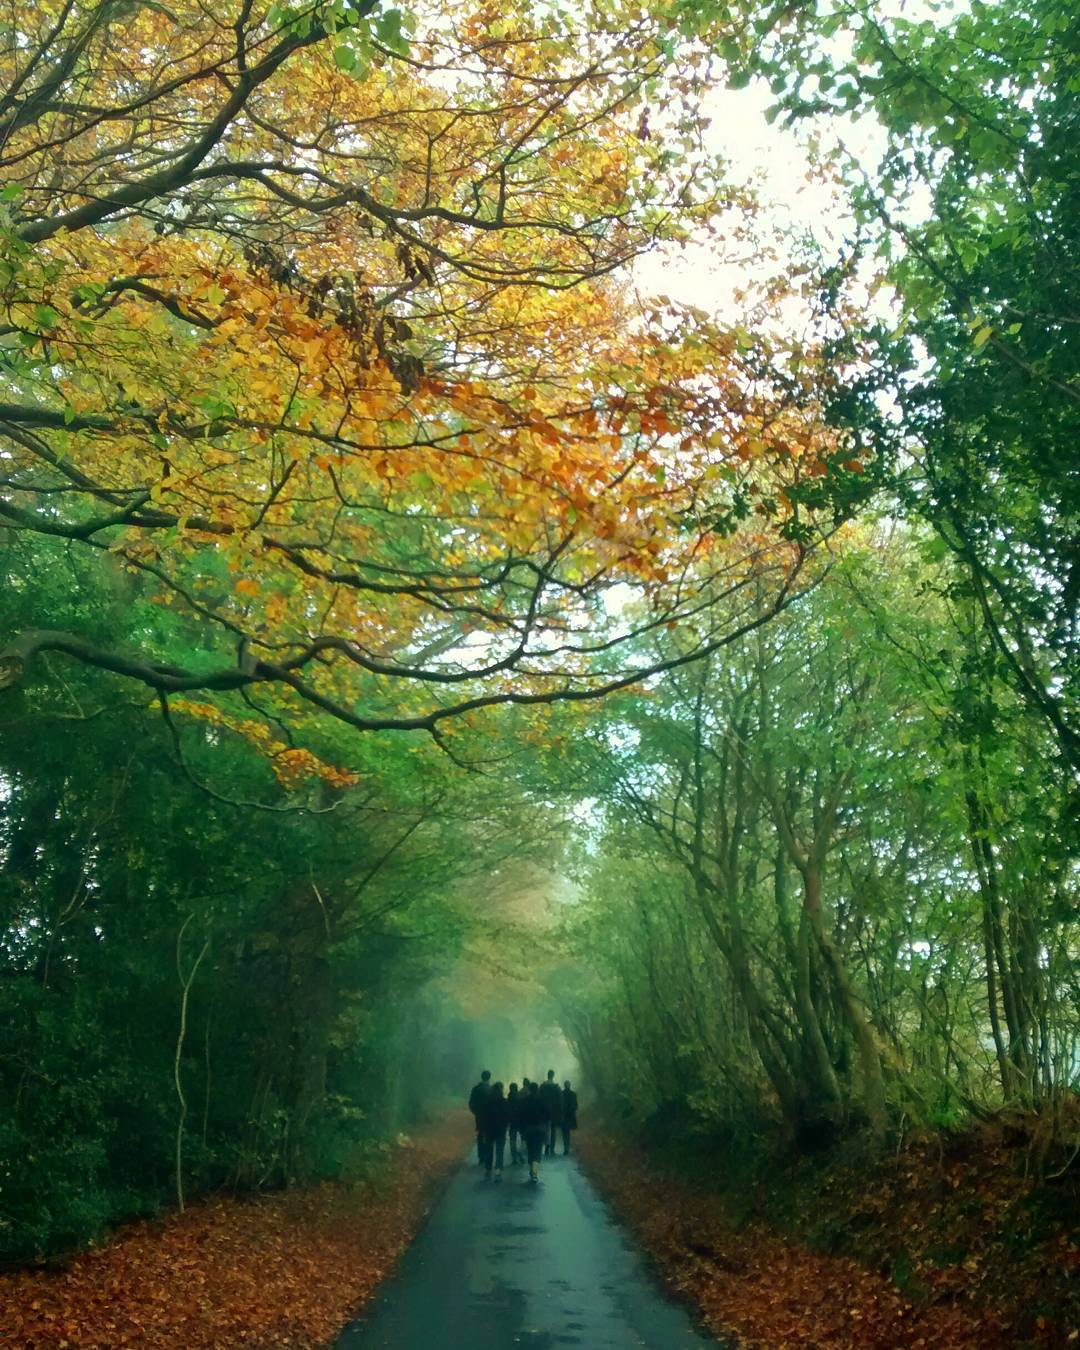 Echoes of an amazing #weekend with good friends in an stunningly beautiful place.  #autumnleaves #autumn #england #countryside #englishcountryside #path #forest.